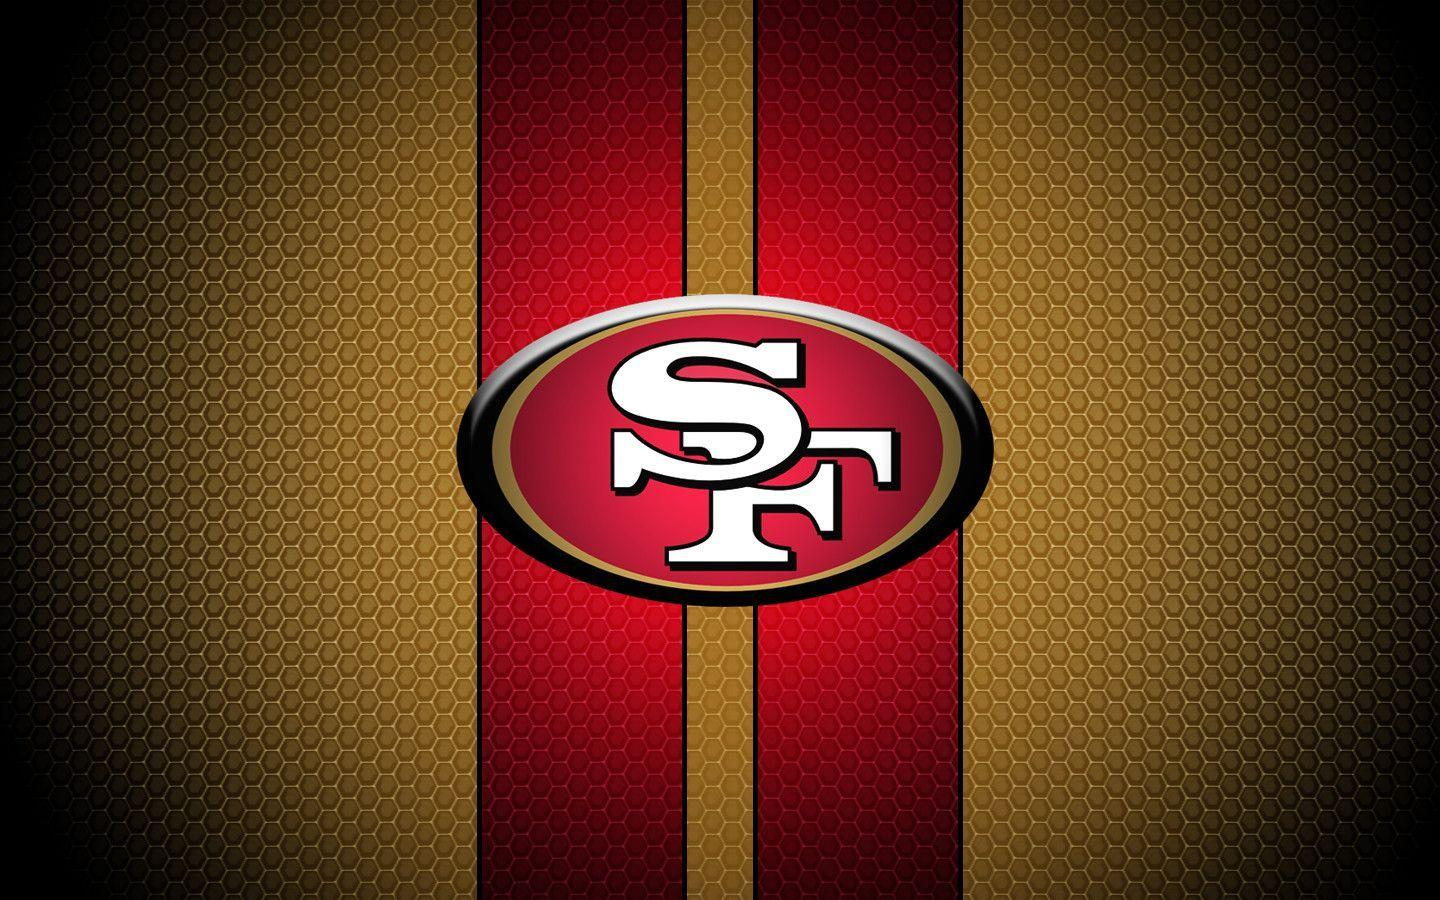 49ers wallpapers | What Wallpaper